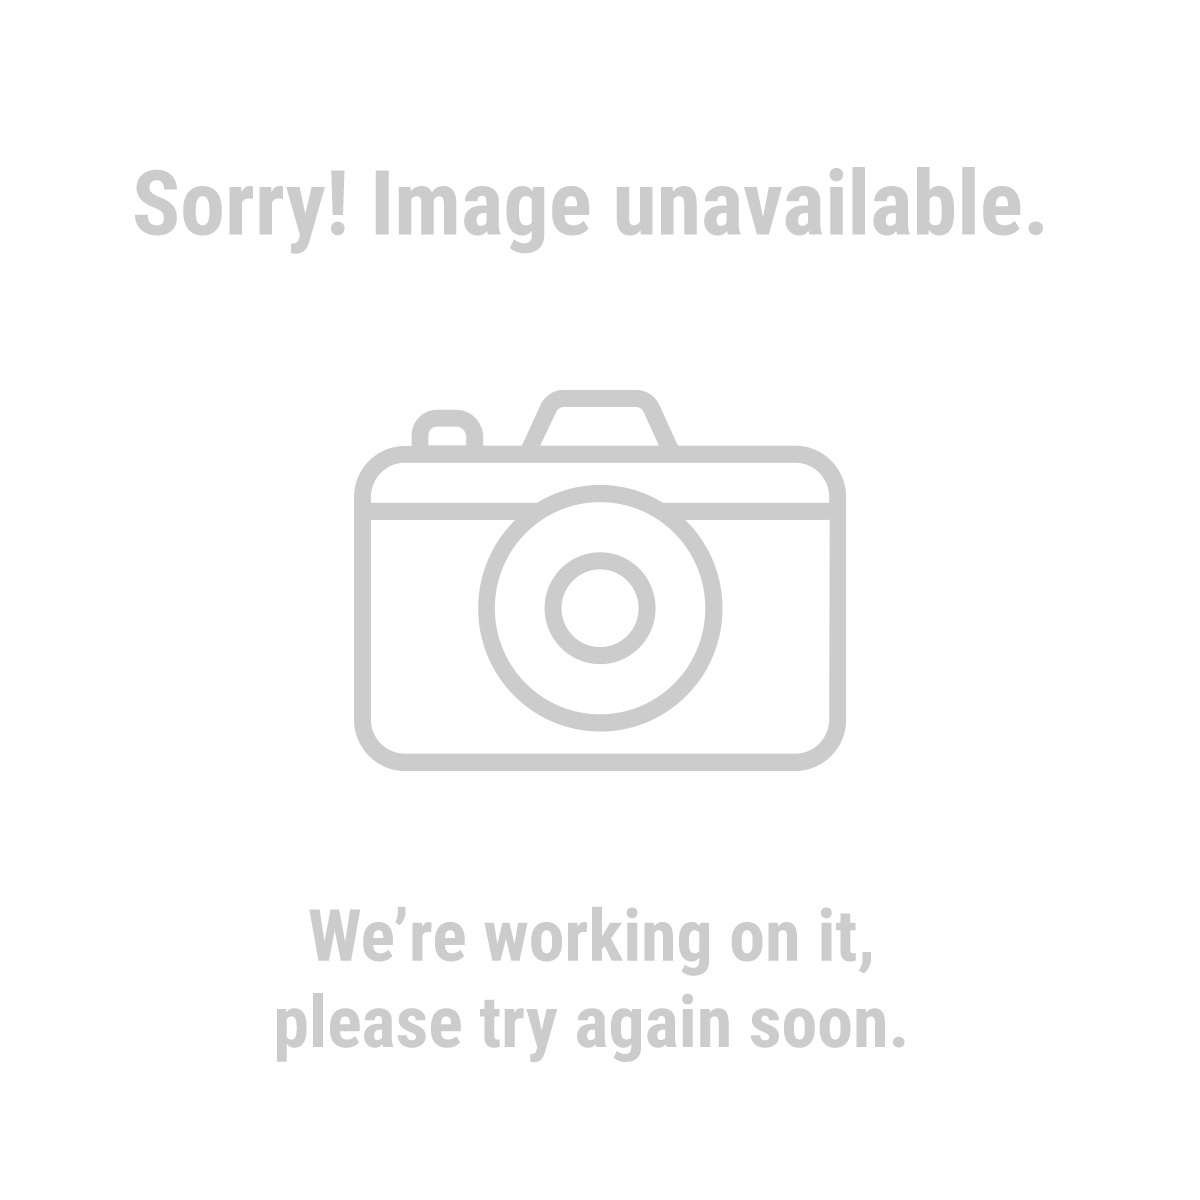 Pittsburgh® 39384 40 Piece Metric Carbon Steel Tap and Die Set